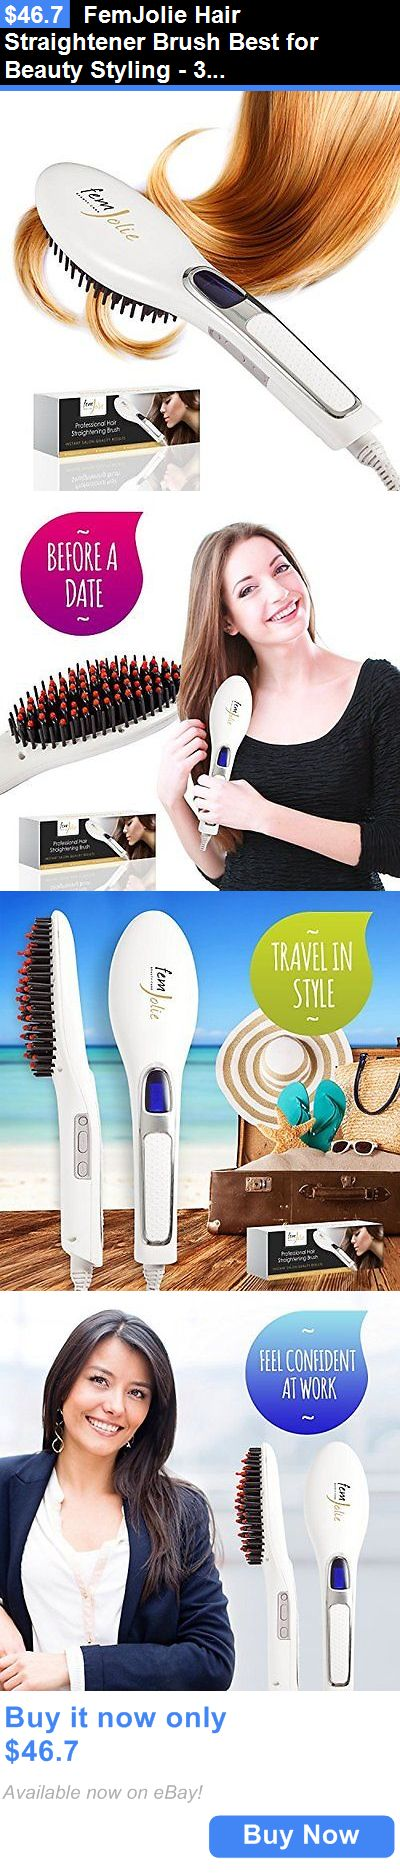 Hair Beauty: Femjolie Hair Straightener Brush Best For Beauty Styling - 3 In 1 Professiona... BUY IT NOW ONLY: $46.7